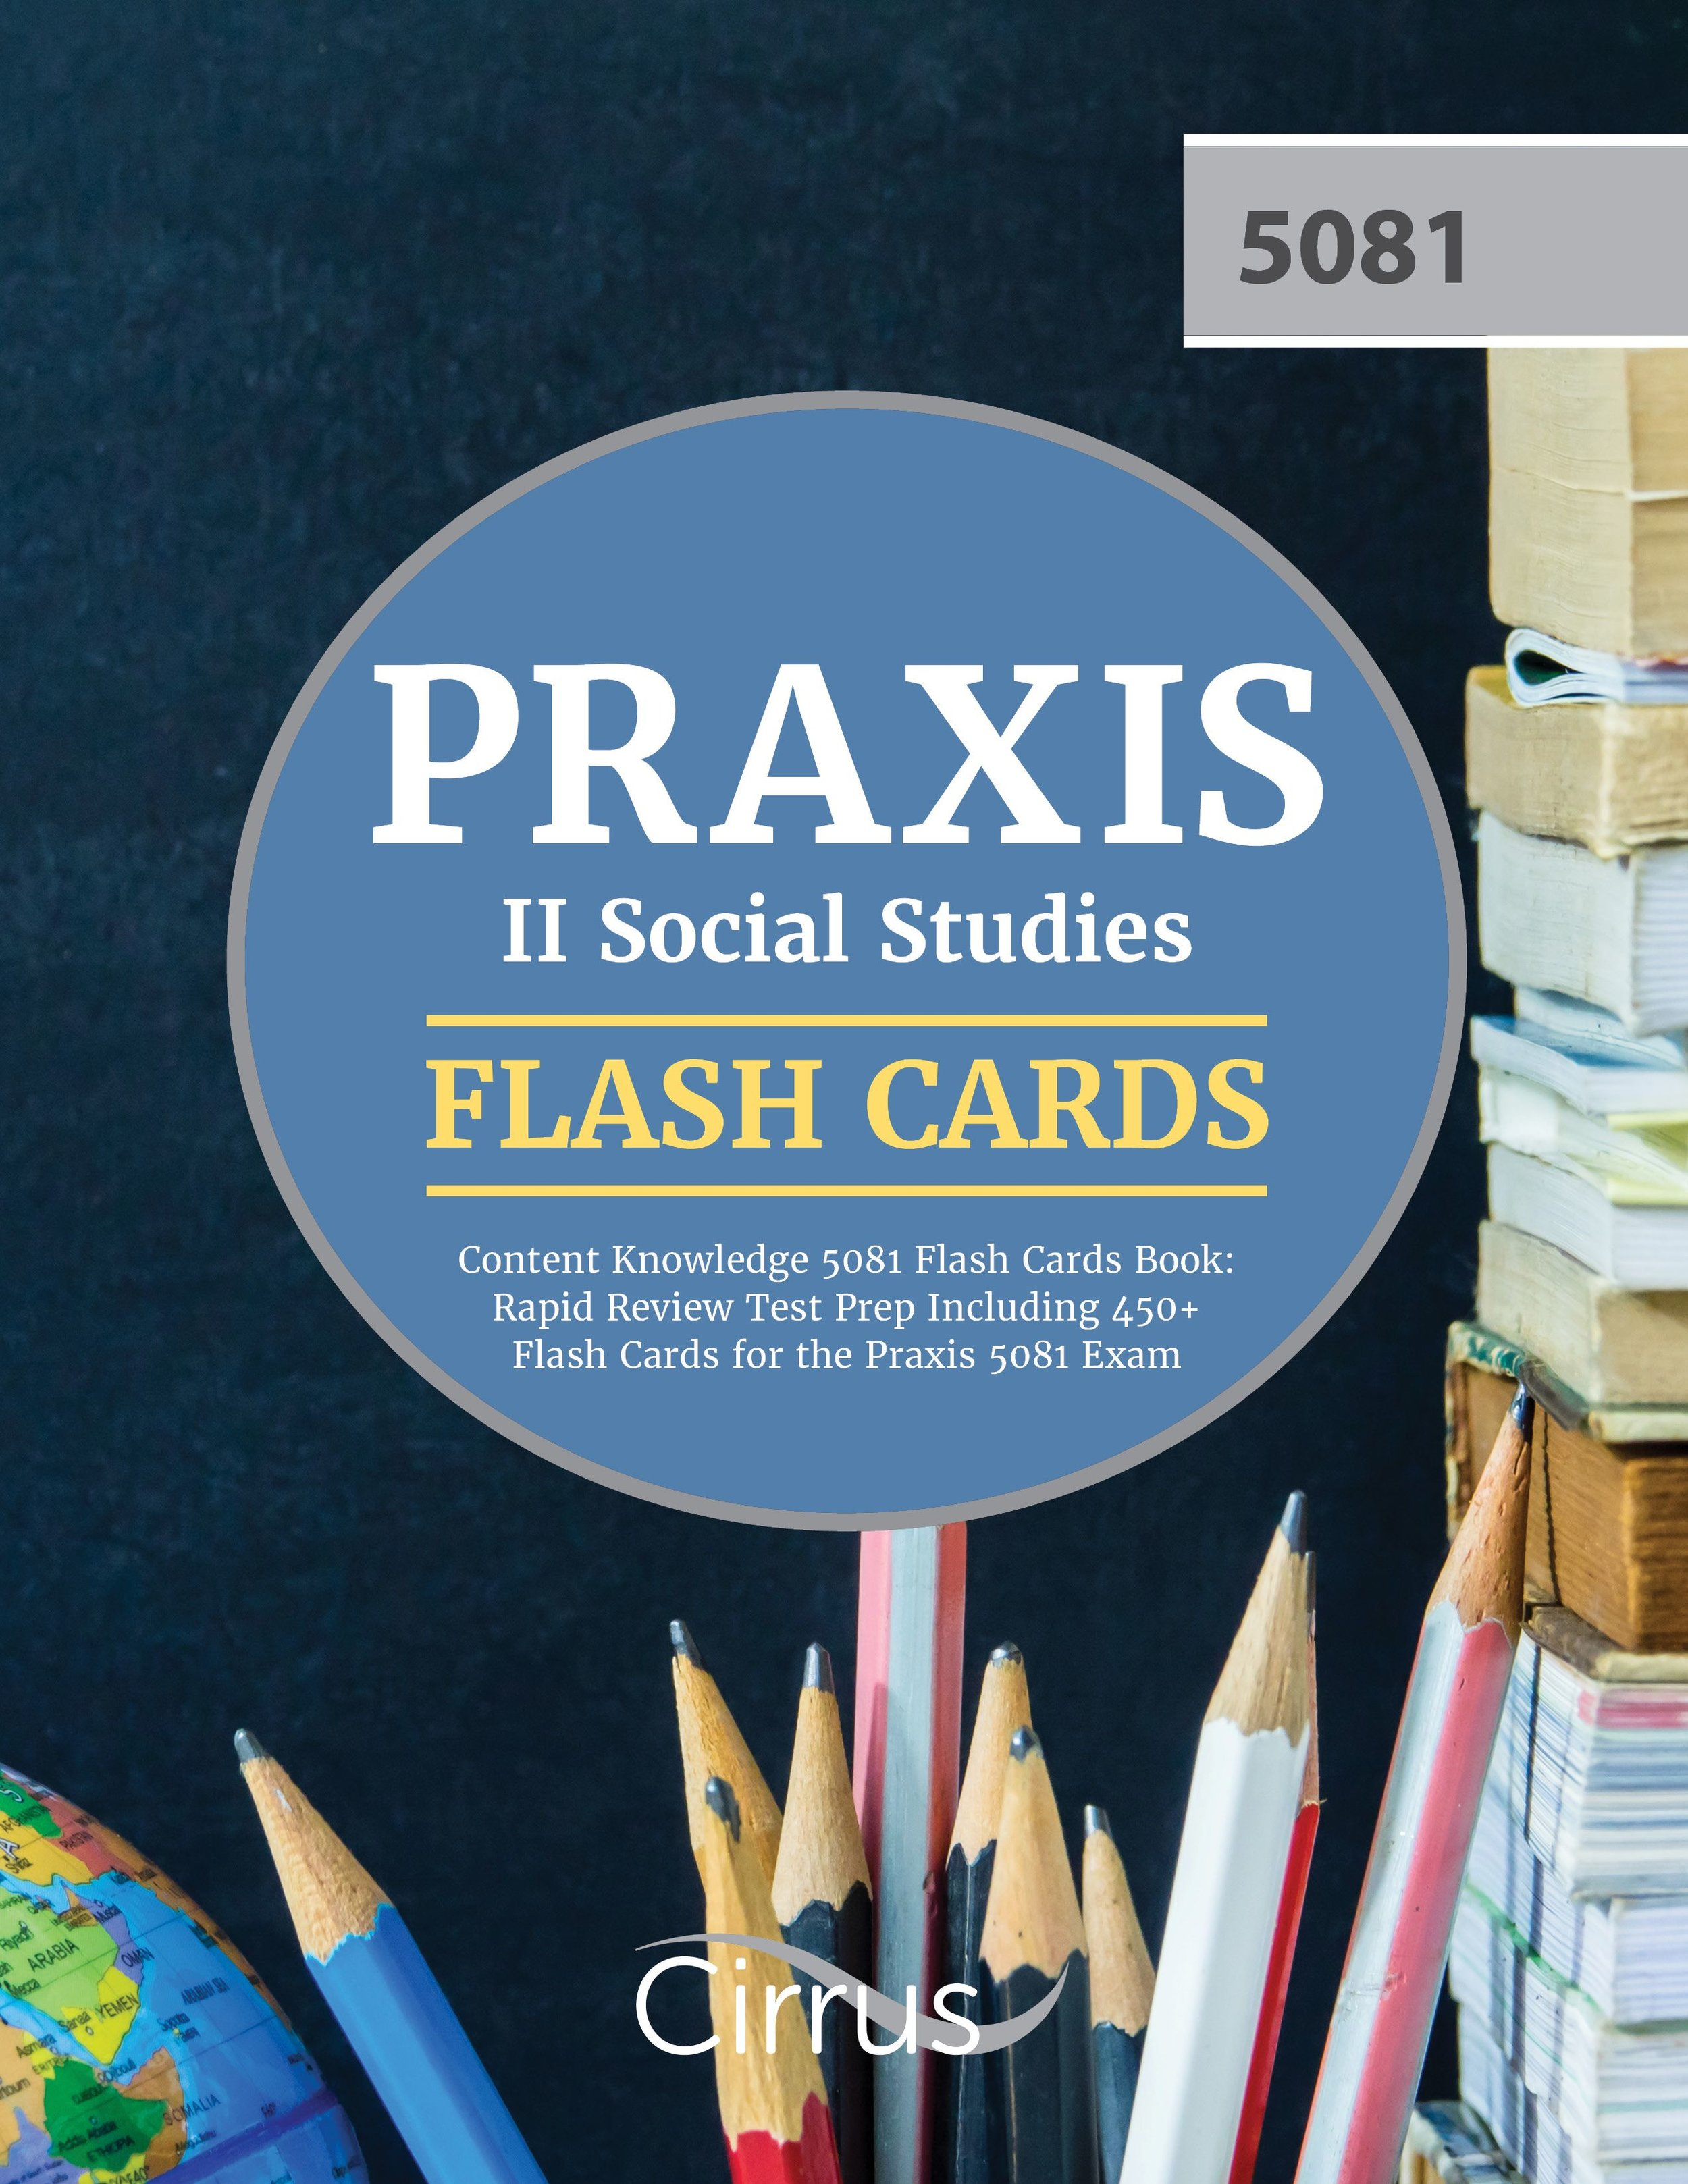 Praxis II Social Studies Content Knowledge 5081 Flash Cards Book